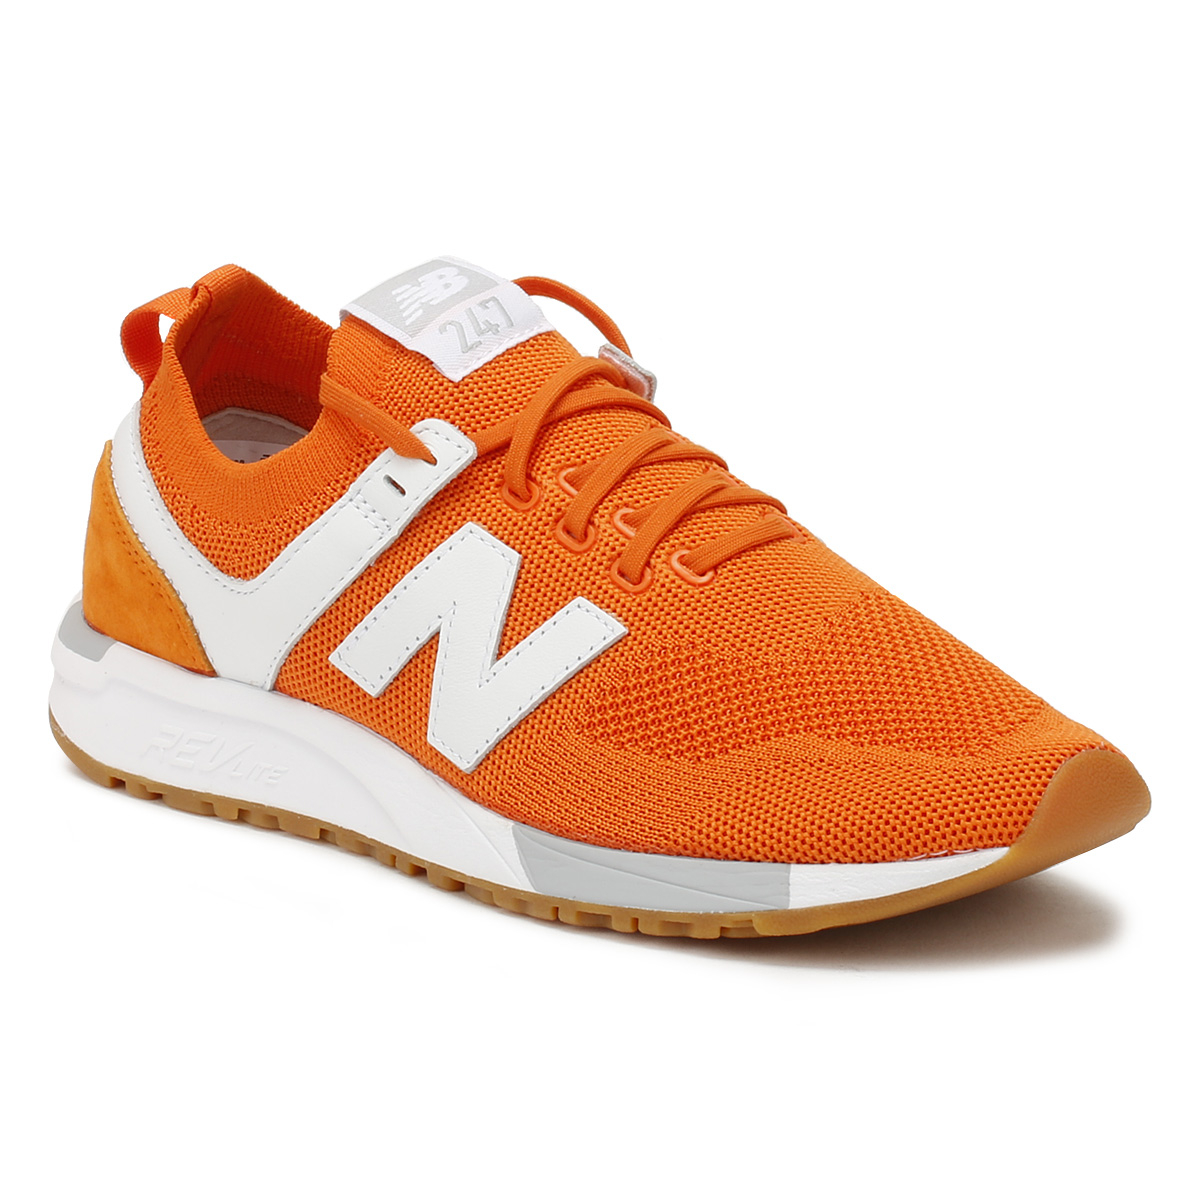 New Balance  Lace Uomo Trainers Orange 247 Lace  Up Sport Casual Running Schuhes 212923